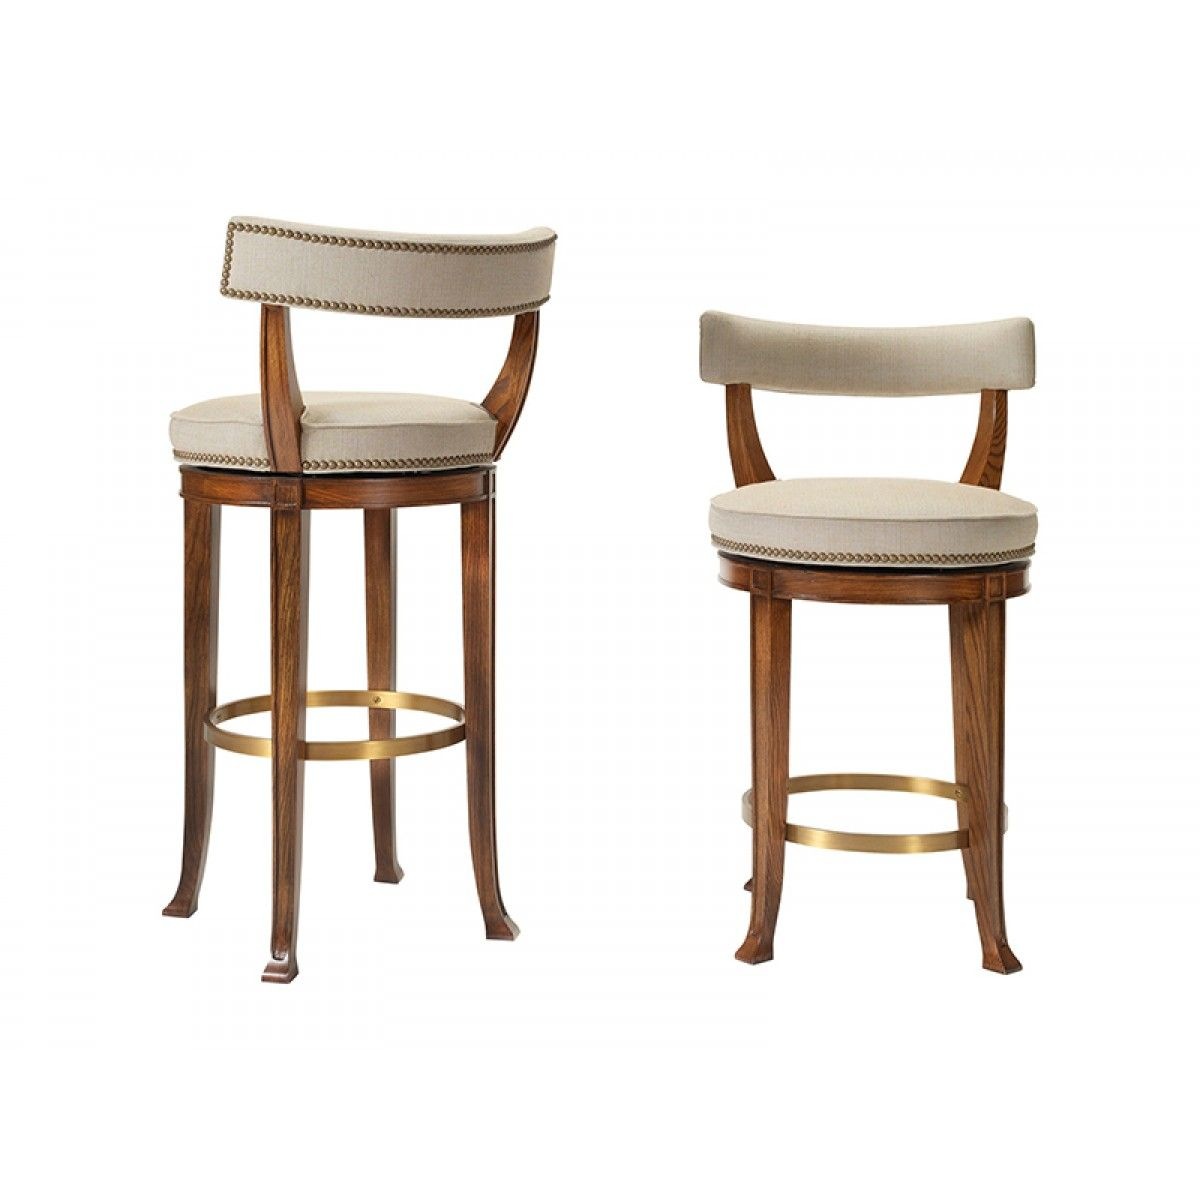 Surprising Hickory Chair 1911 Collection Newbury Swivel Curved Back Bar Alphanode Cool Chair Designs And Ideas Alphanodeonline